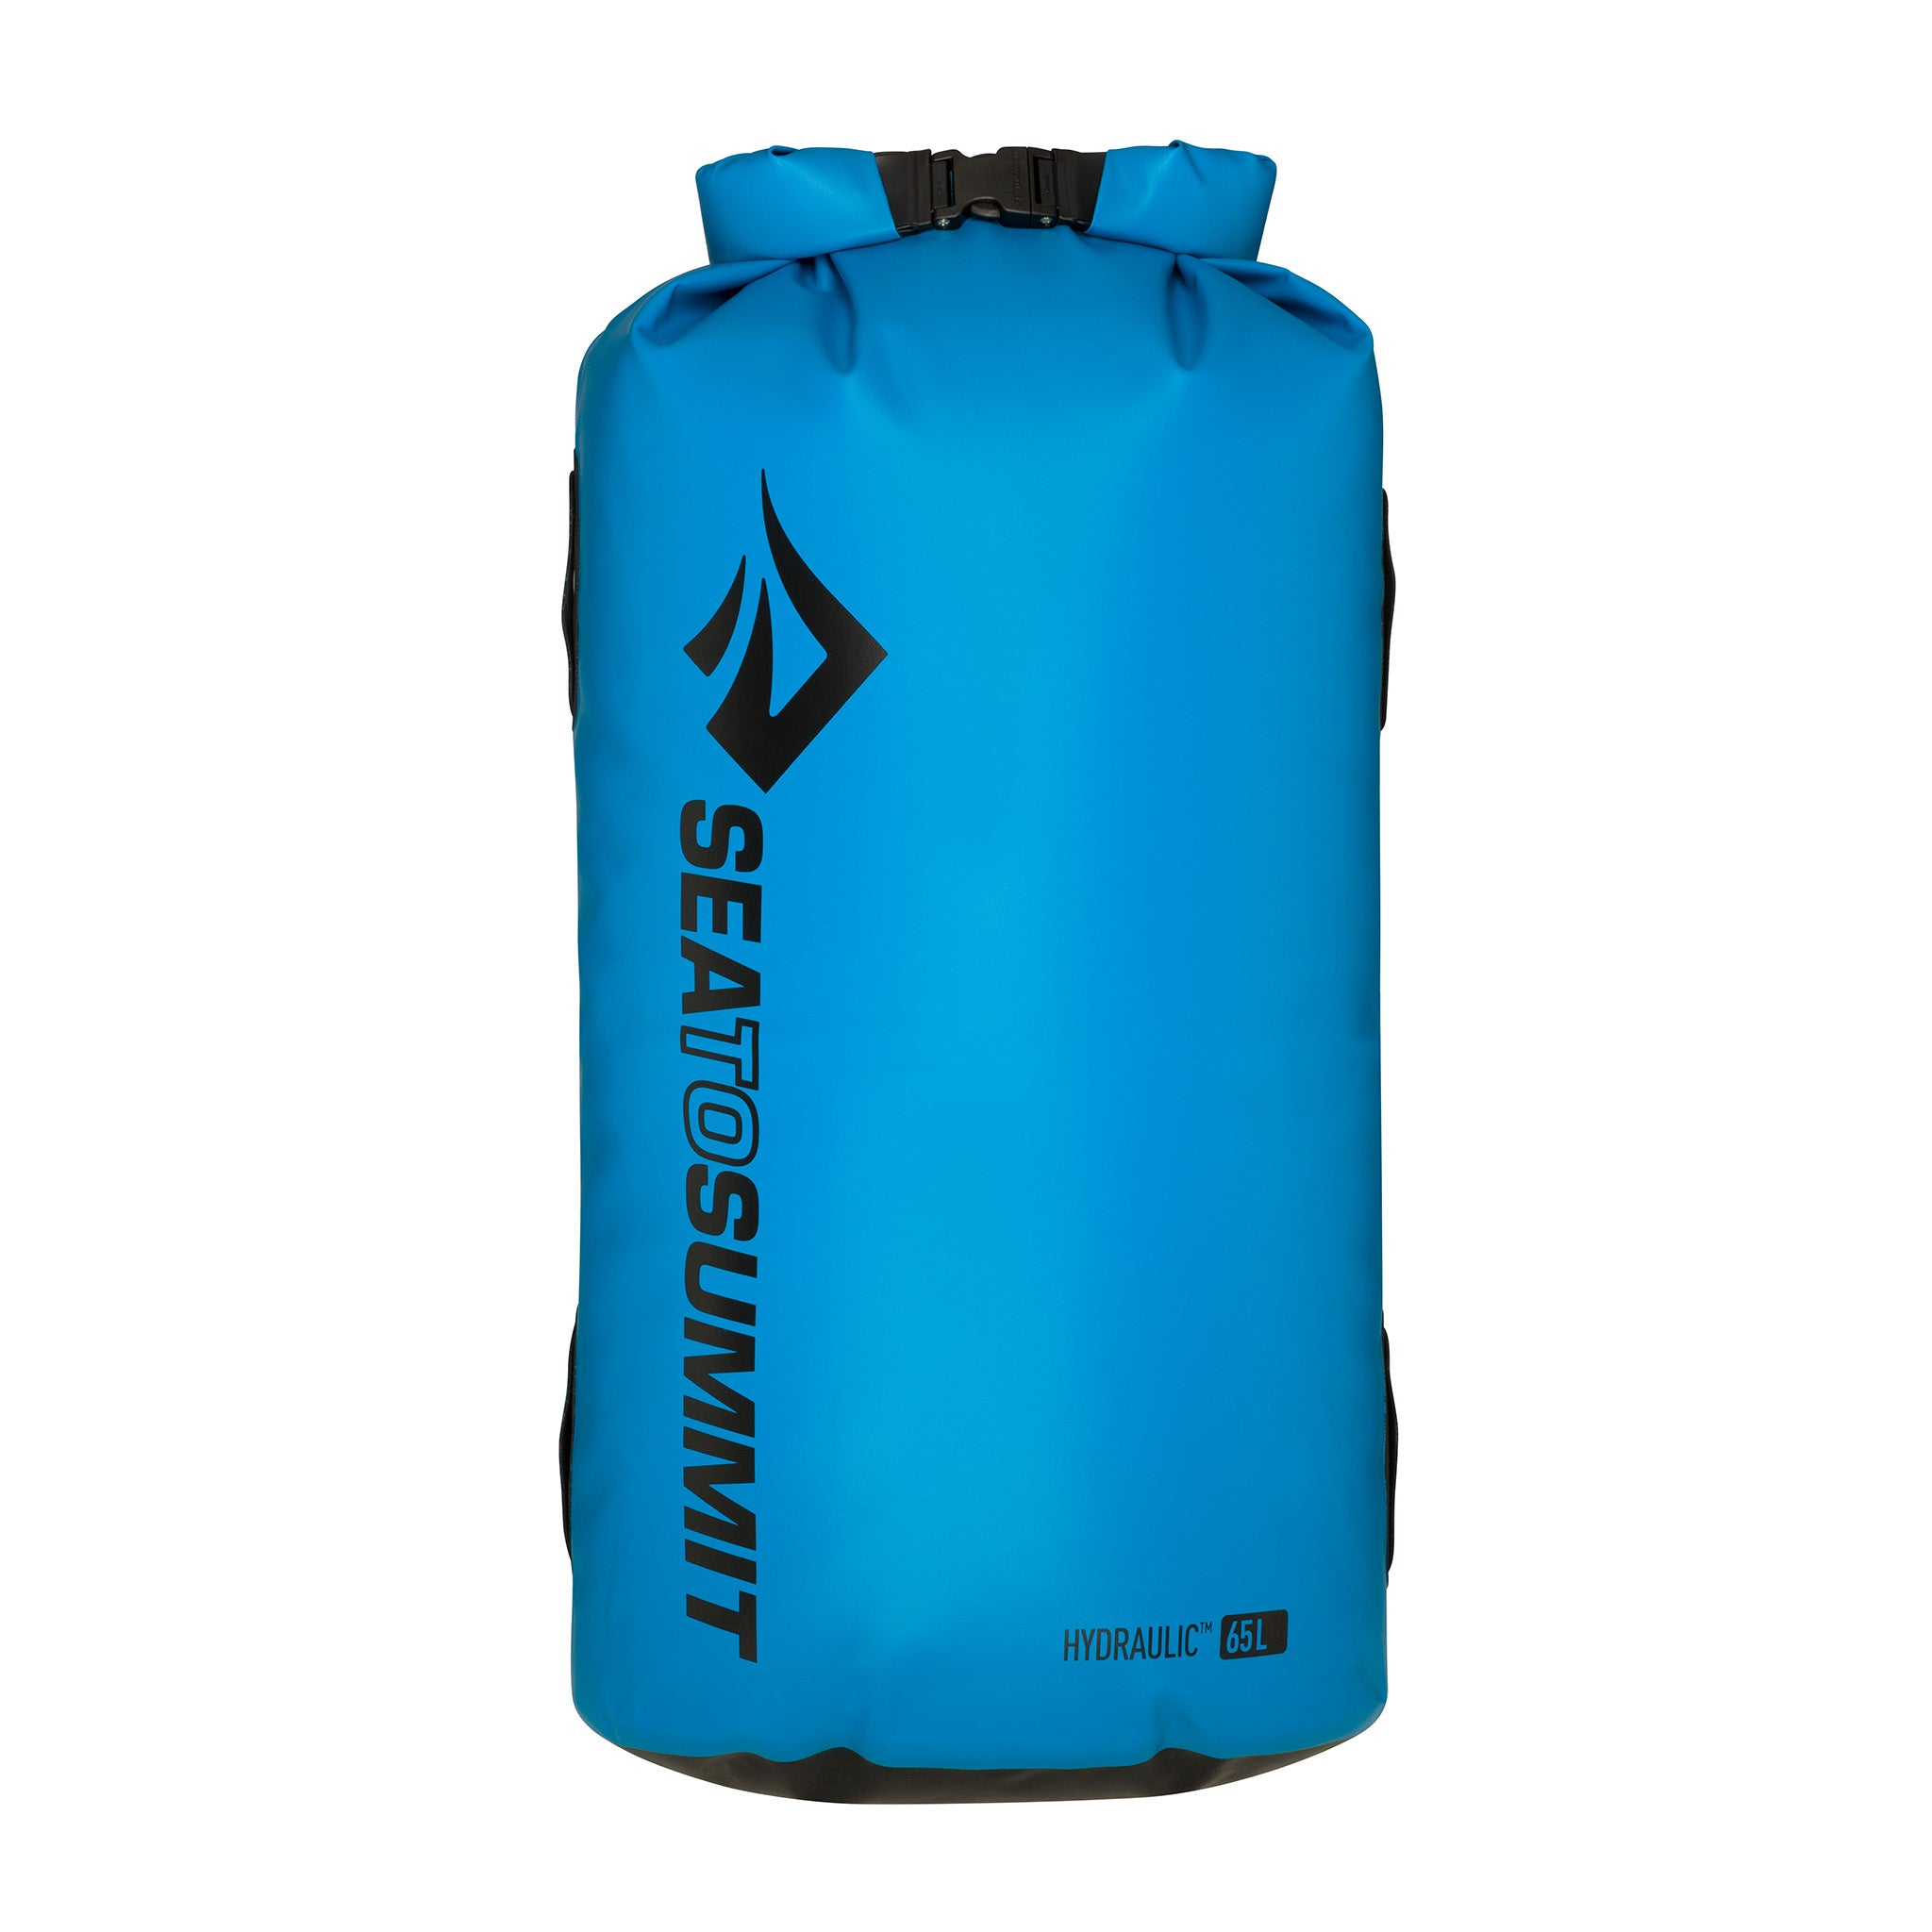 Hydraulic_Dry_Bag___65_Liter___Blue